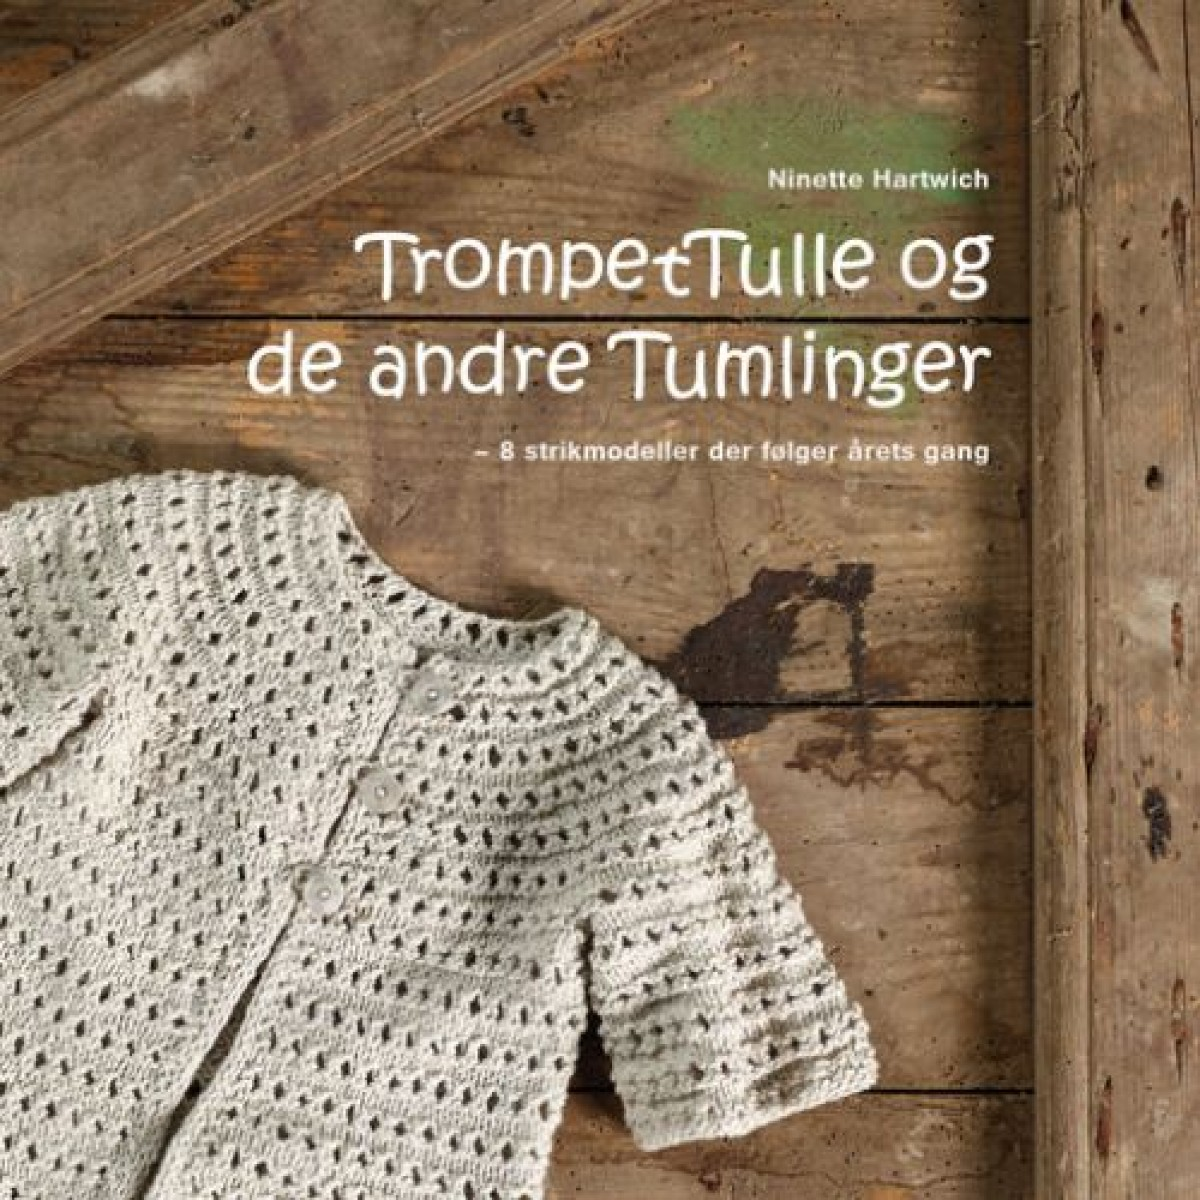 Trompettulle and Tumlingerne-31